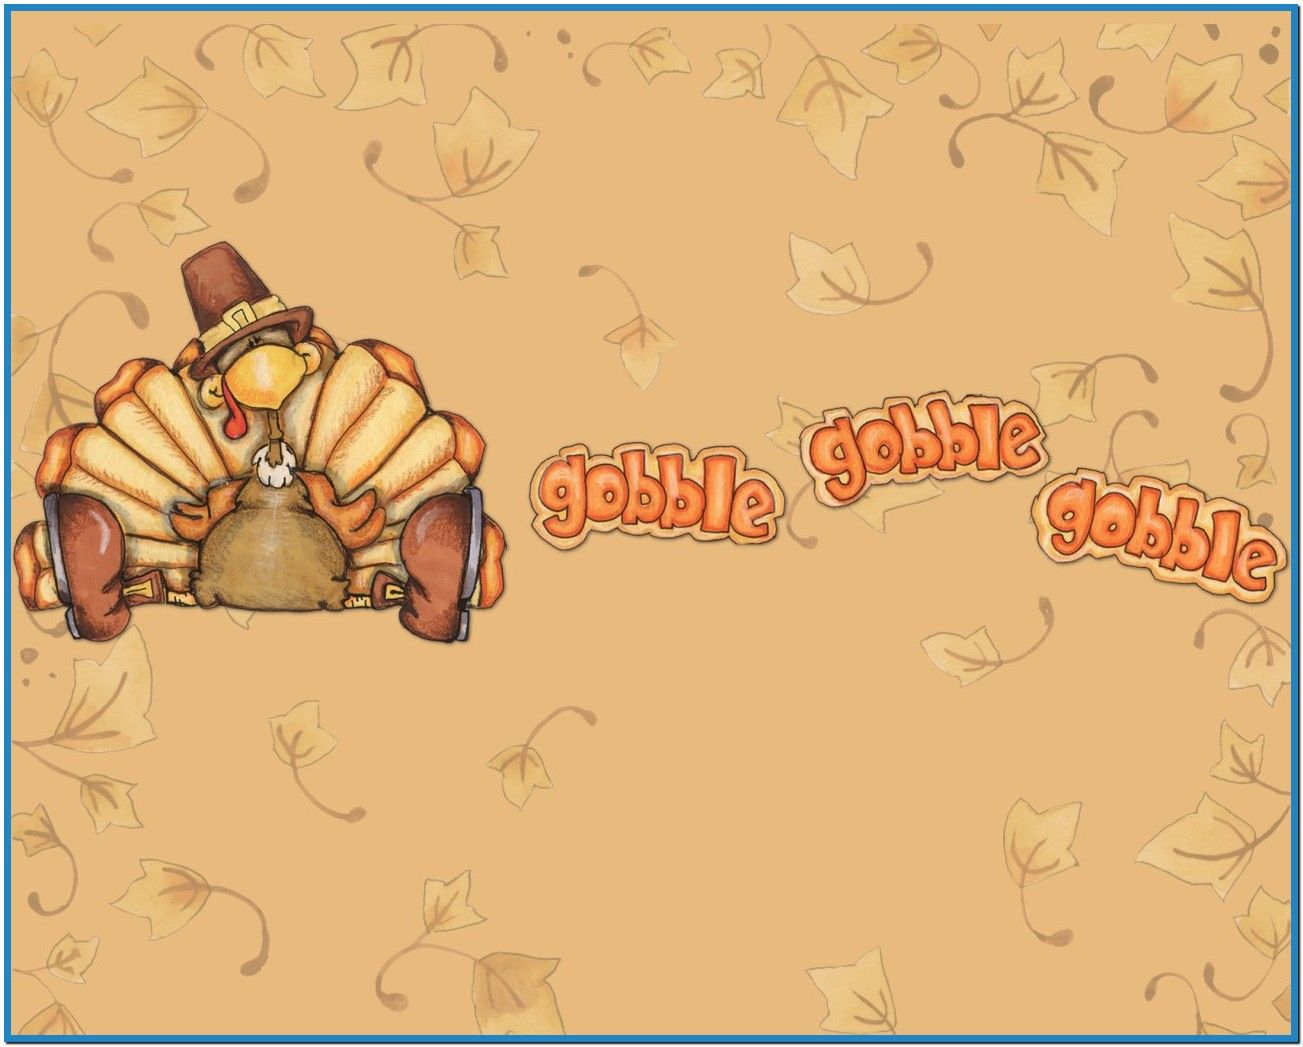 Free Thanksgiving Wallpapers And Screensavers 1366 768 Thanksgiving Screensavers And Wal Thanksgiving Wallpaper Thanksgiving Background Thanksgiving Pictures